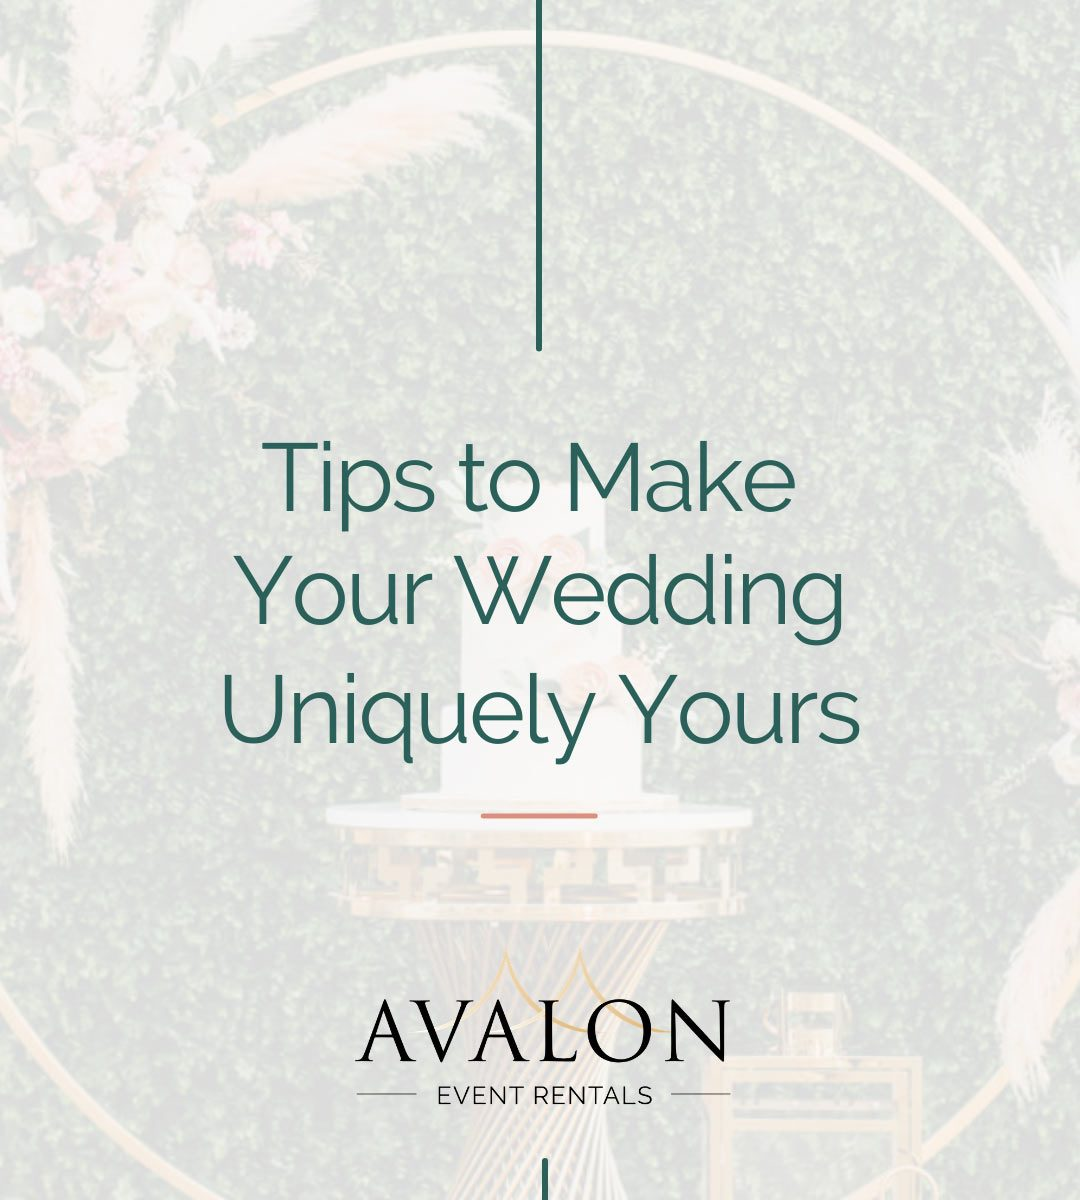 Tips to make your wedding uniquely yours Avalon Event Rentals